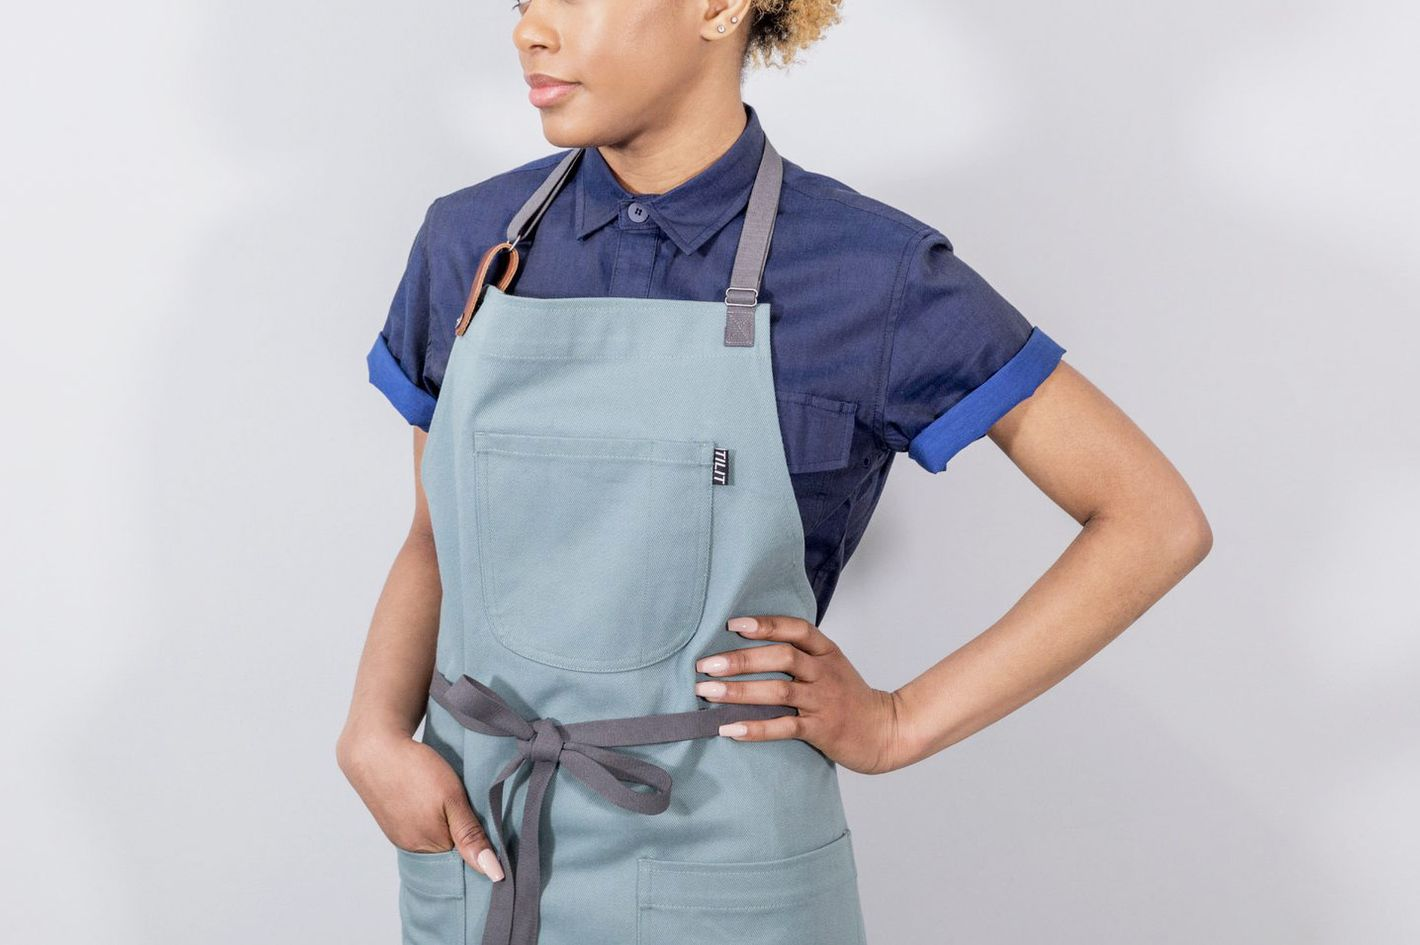 The Best Aprons for Cooking, Reviewed by Chefs 2018